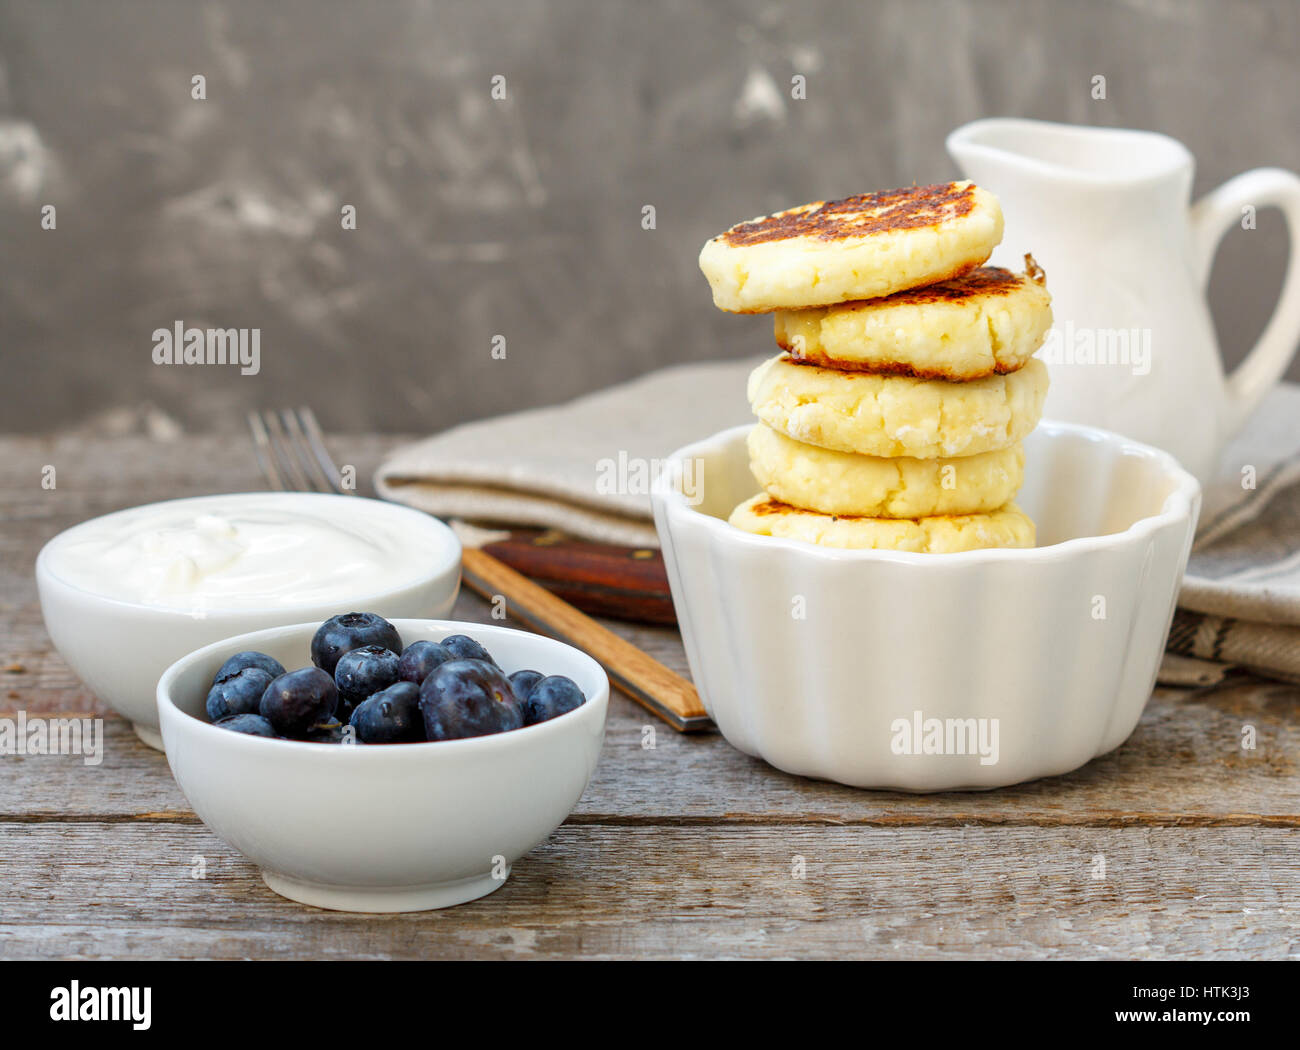 Cottage cheese pancakes for breakfast with blueberries and sour cream. - Stock Image